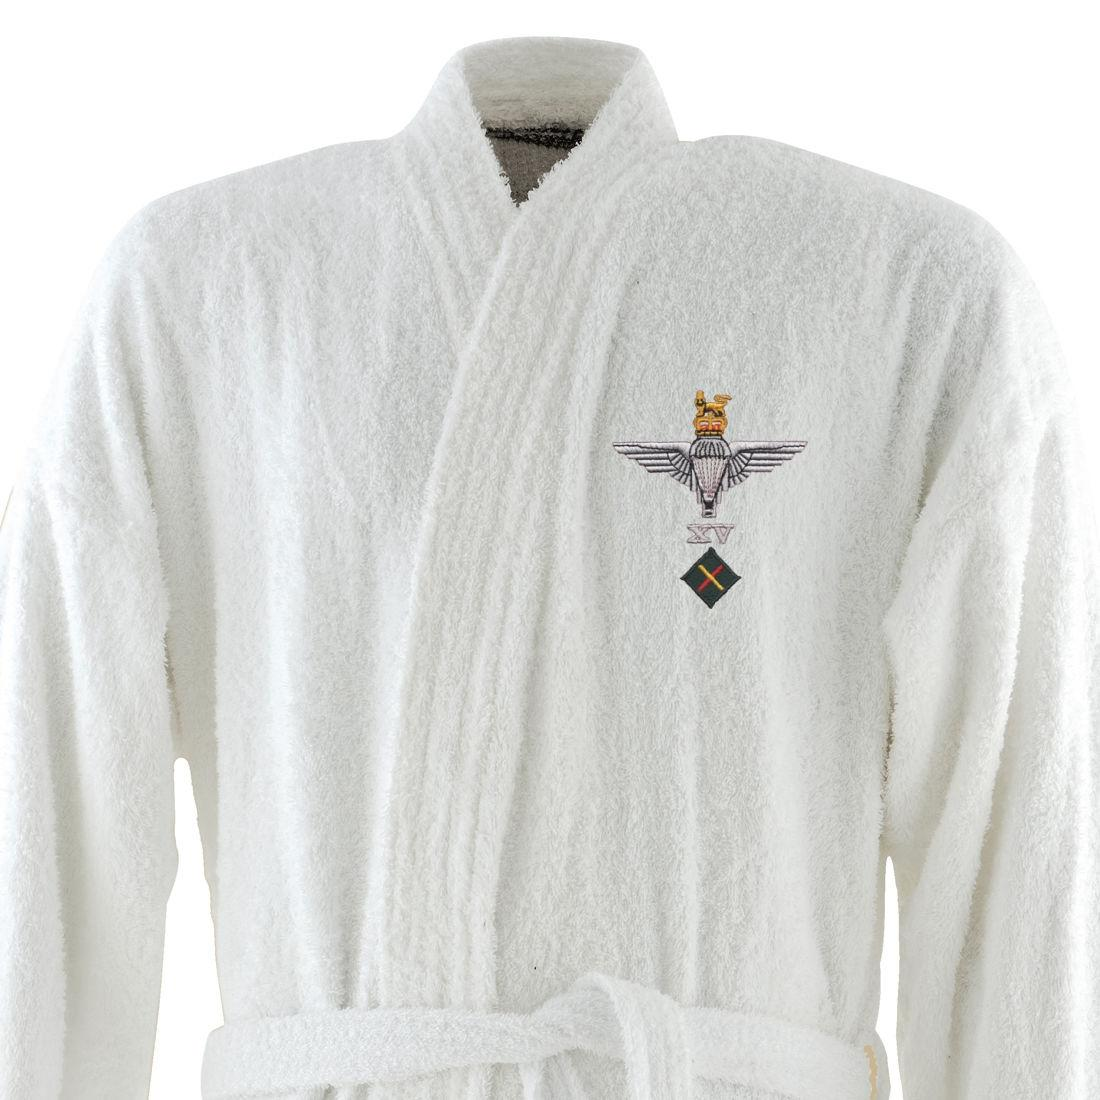 *CLEARANCE* Dressing Gown, S/M, White, 15 Para